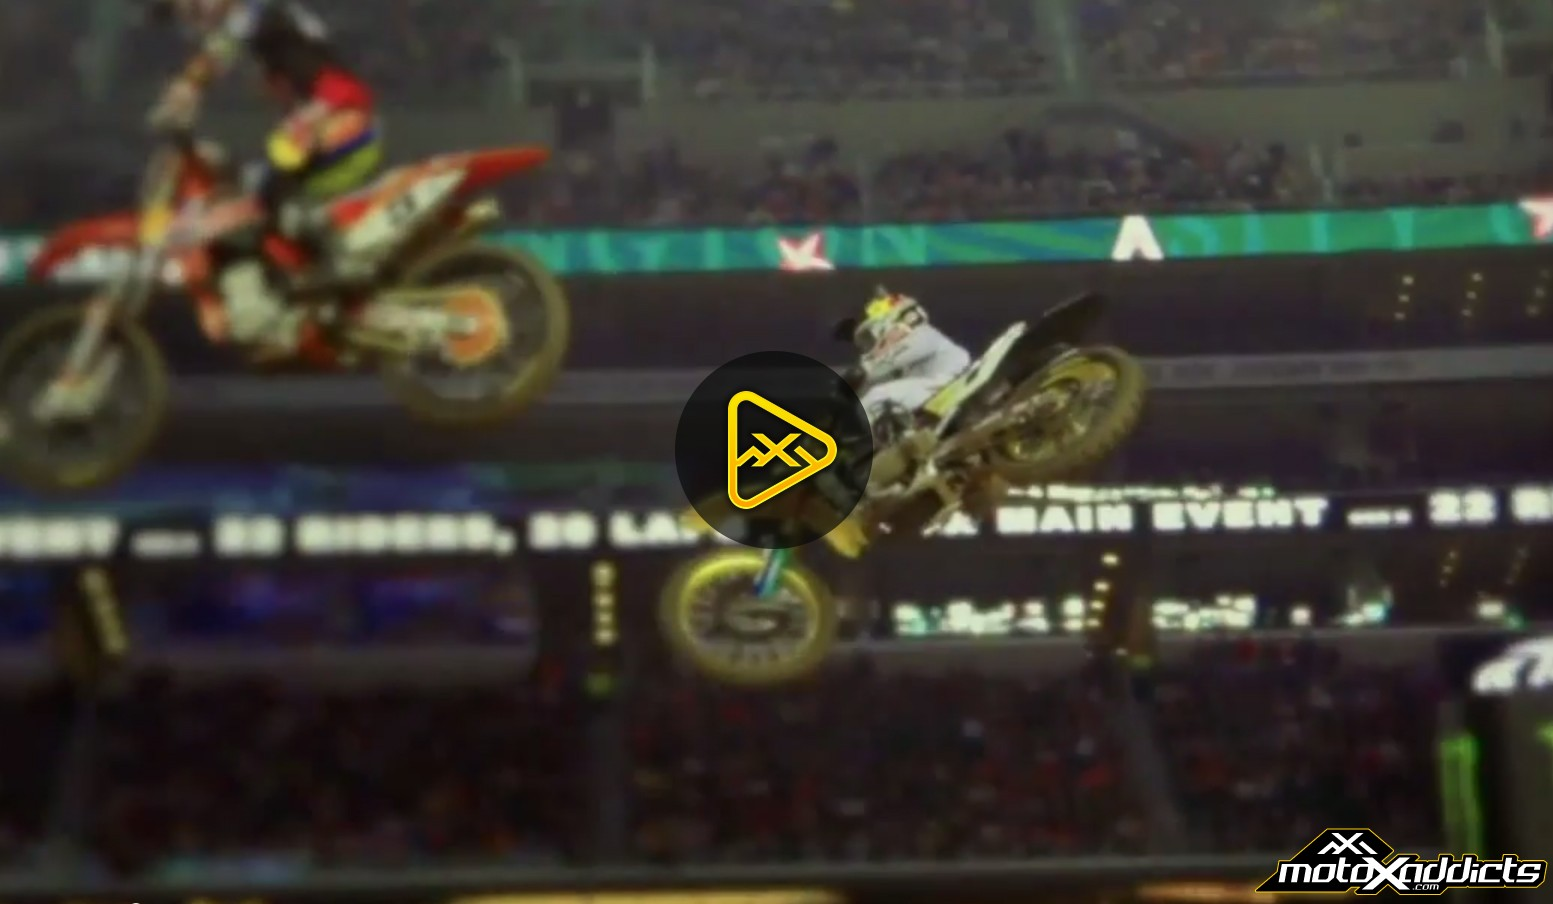 The Scrub – Top Supercross Riders Talk about Air Time